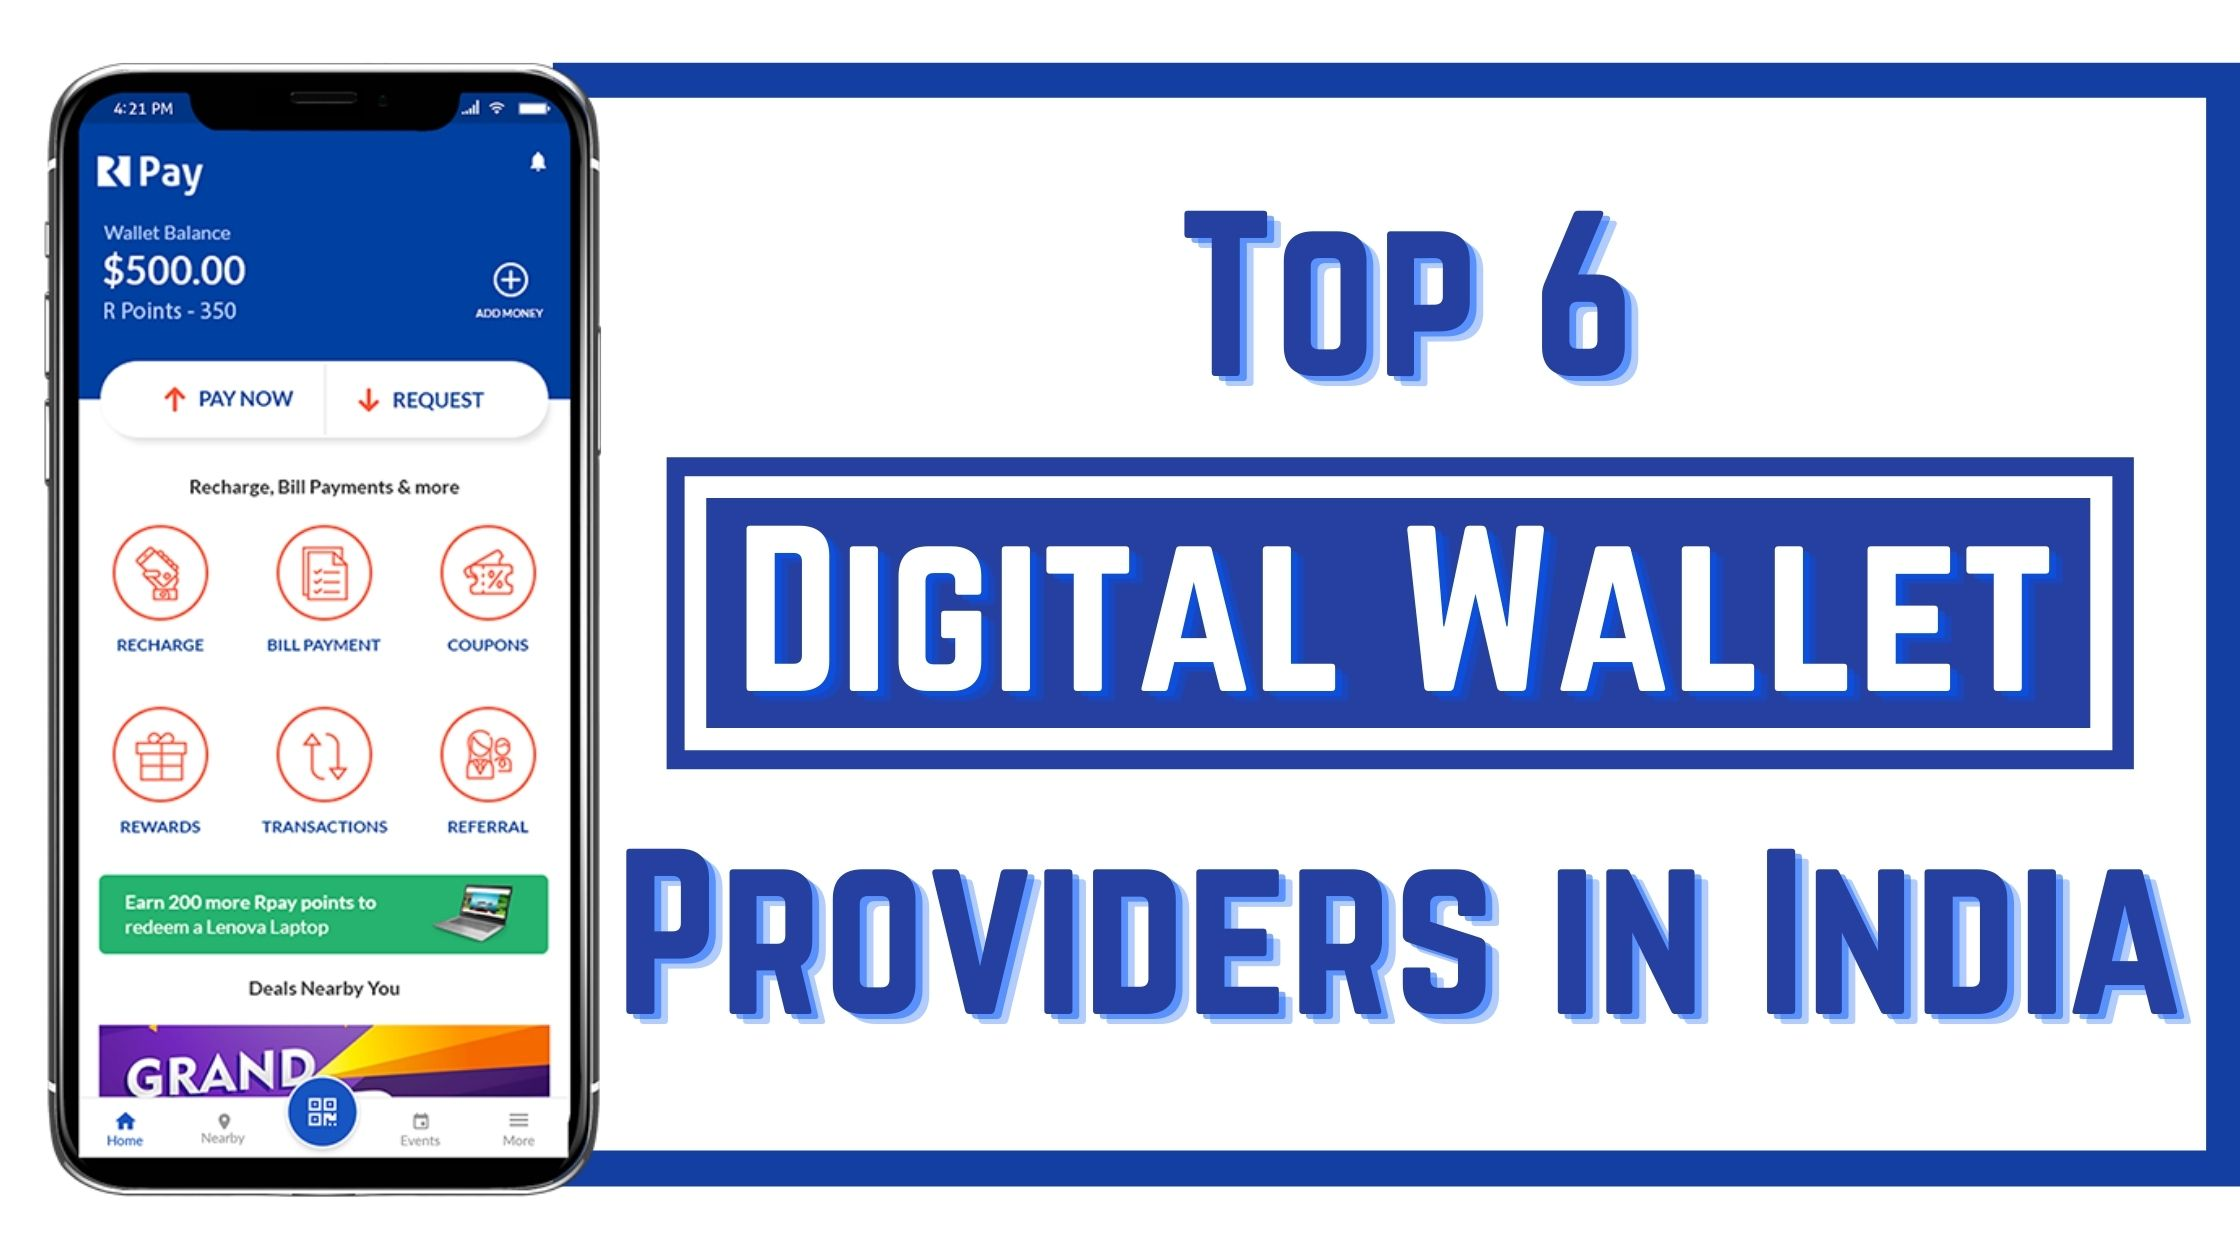 Top 6 Digital Wallet Providers in India